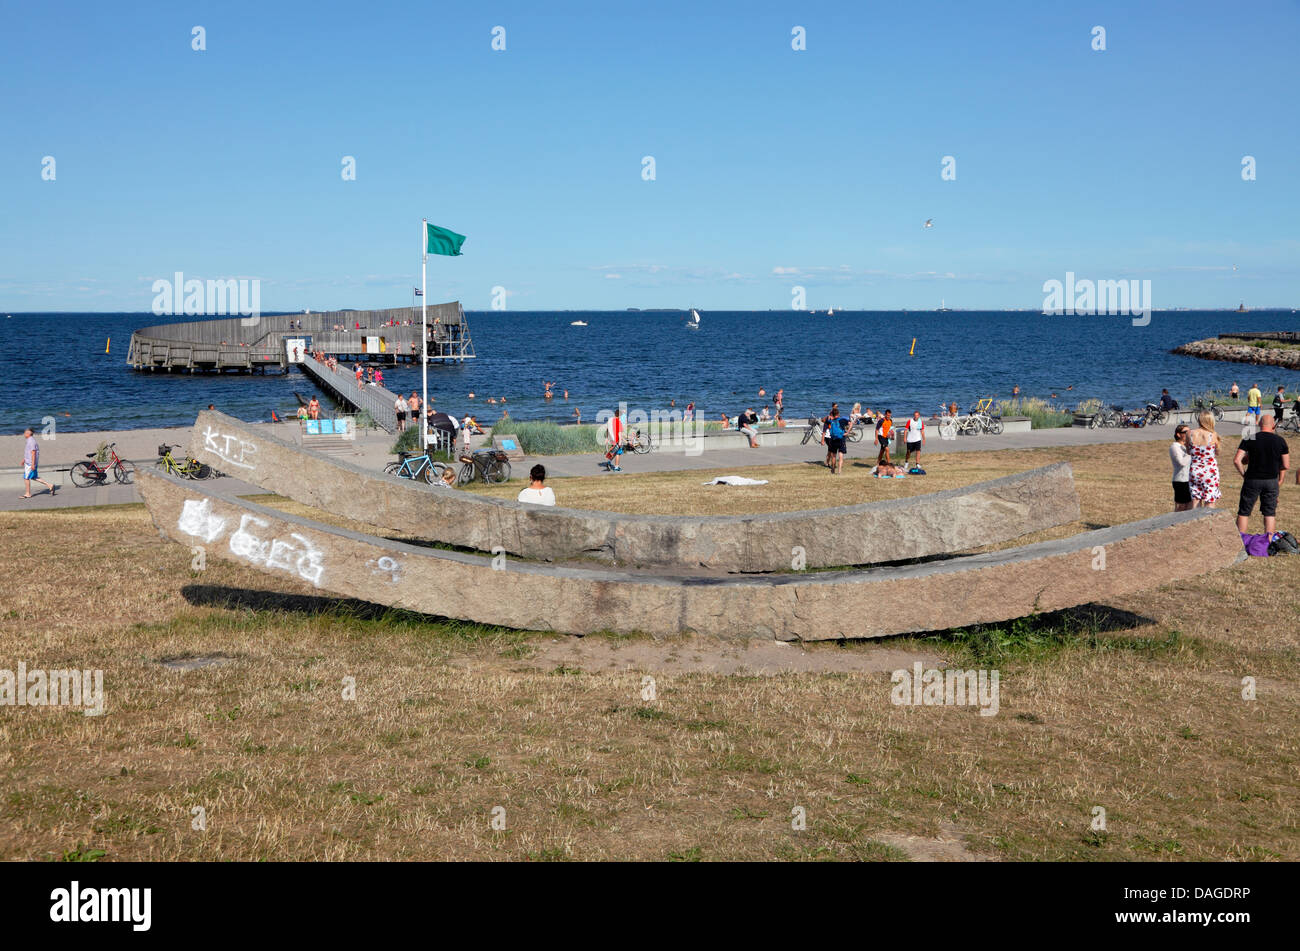 Kastrup Søbad, Kastrup Public Baths on Amager connected to the rest of the Kastrup bathing resort, Copenhagen, - Stock Image